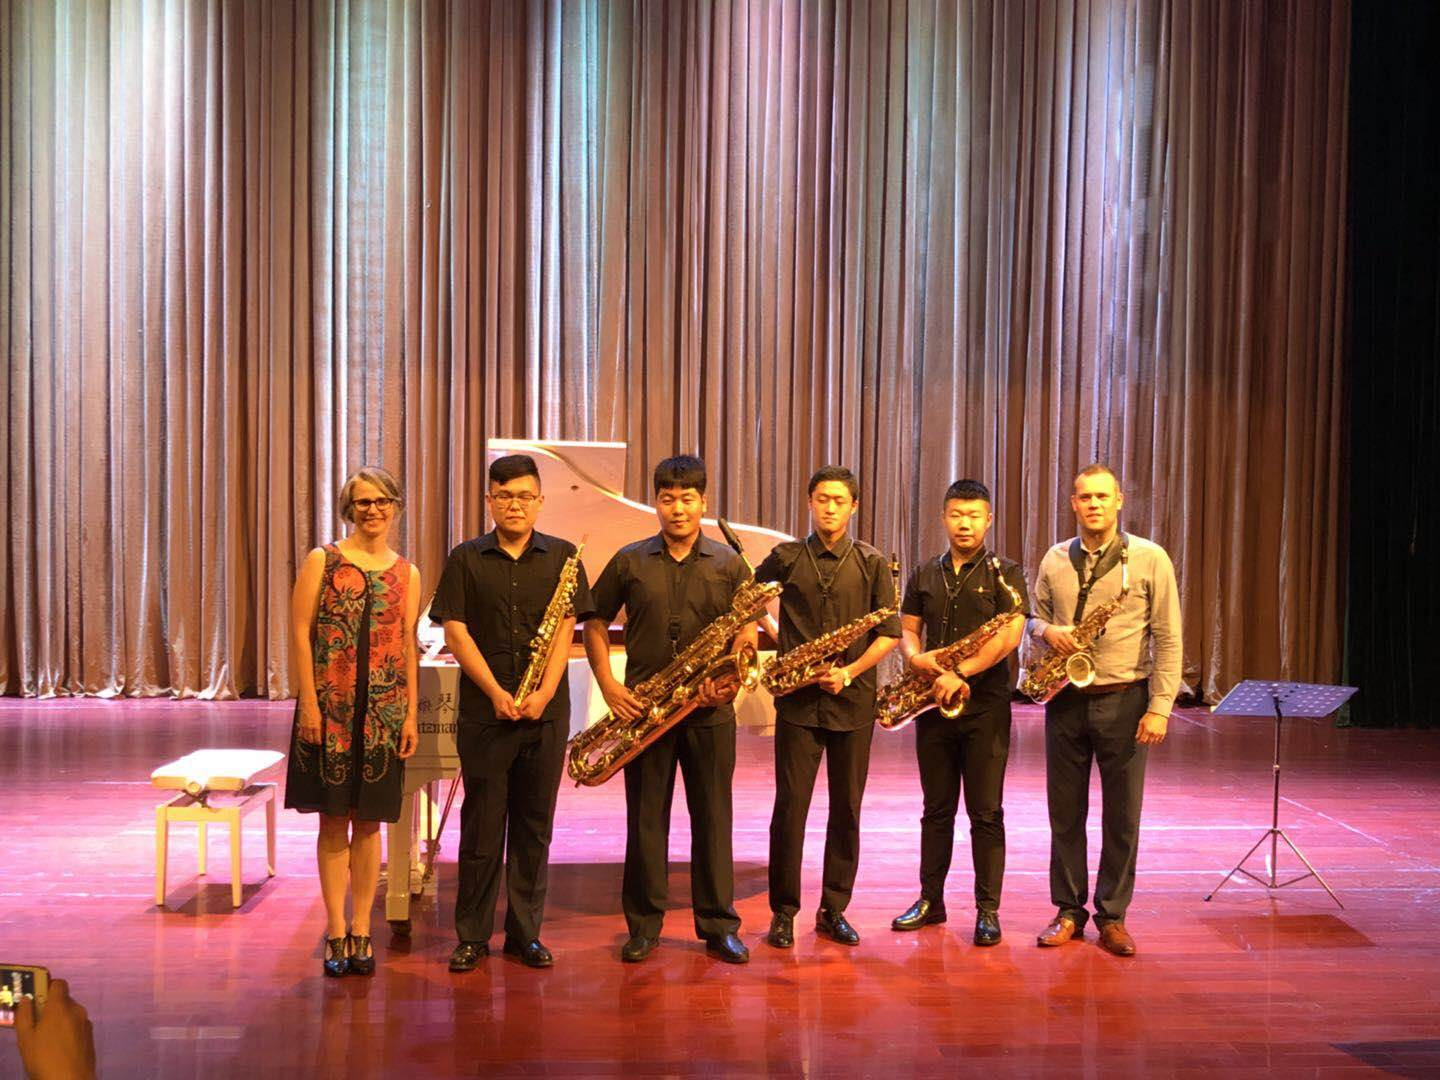 Harrington Loewen China Tour - Group of saxophone players